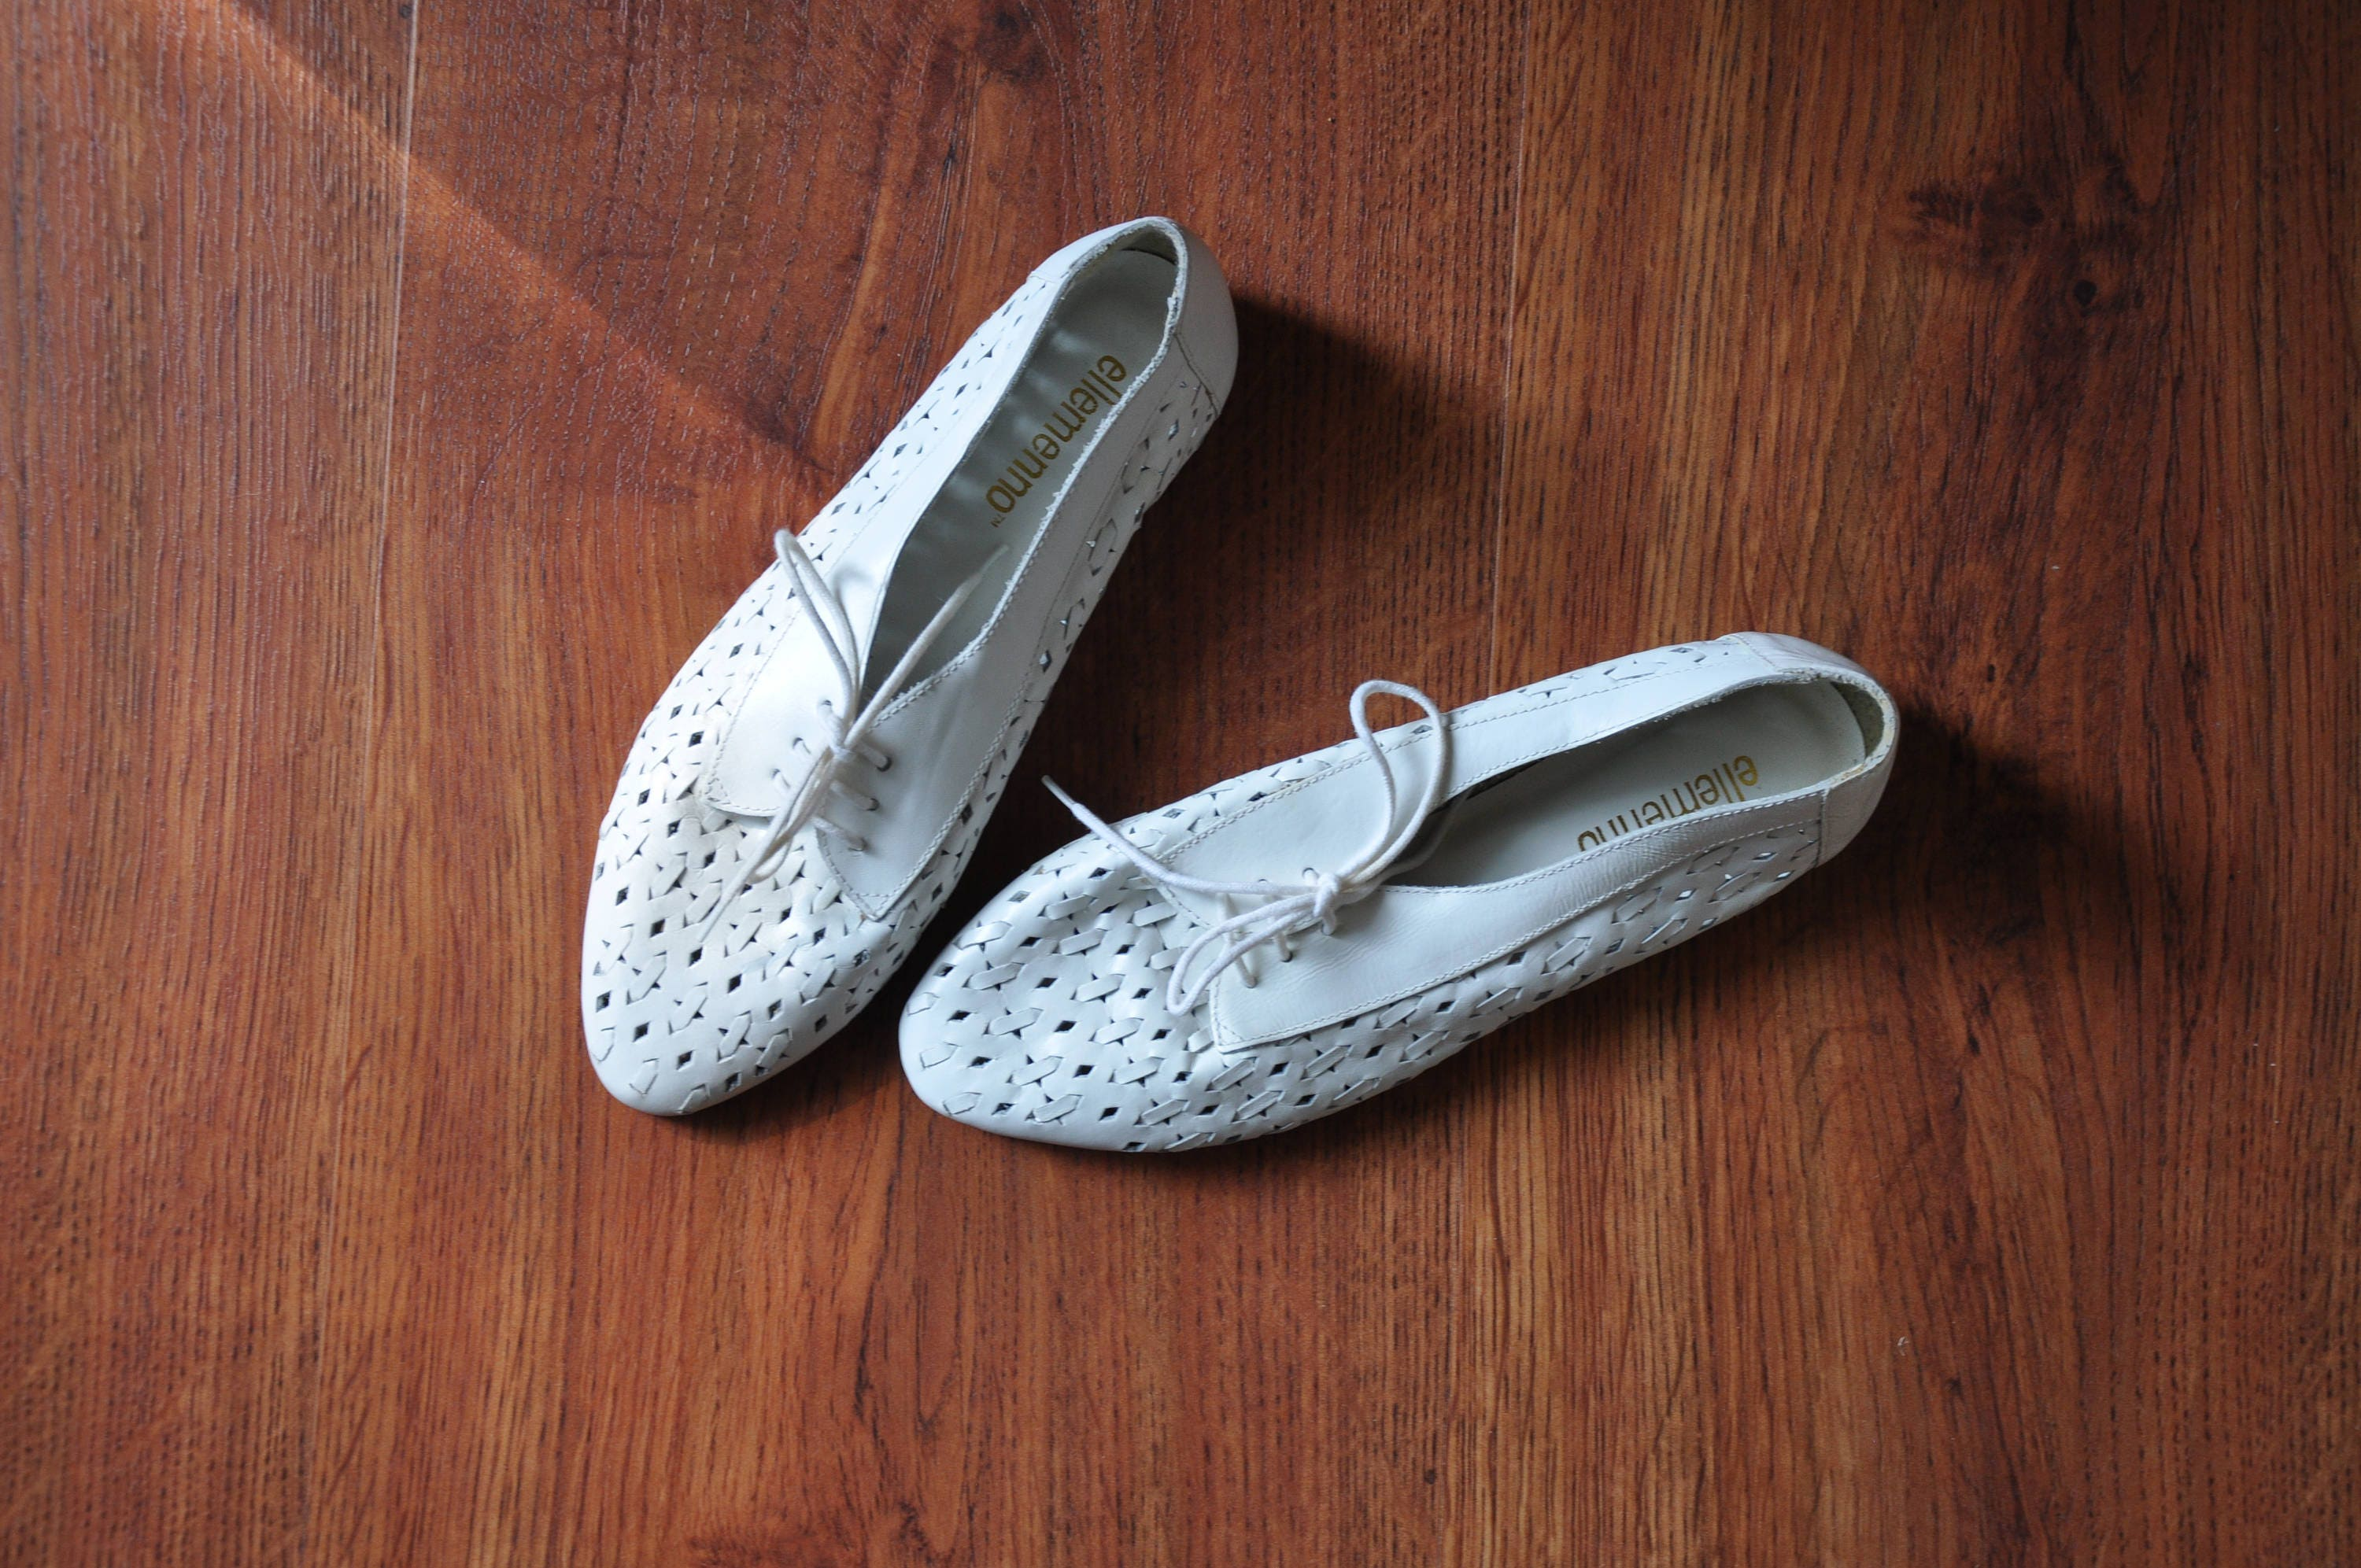 7b0ccf98fca67 90s white floral oxfords / 1990s perforated leather shoes / white cutout  lace up flats 7